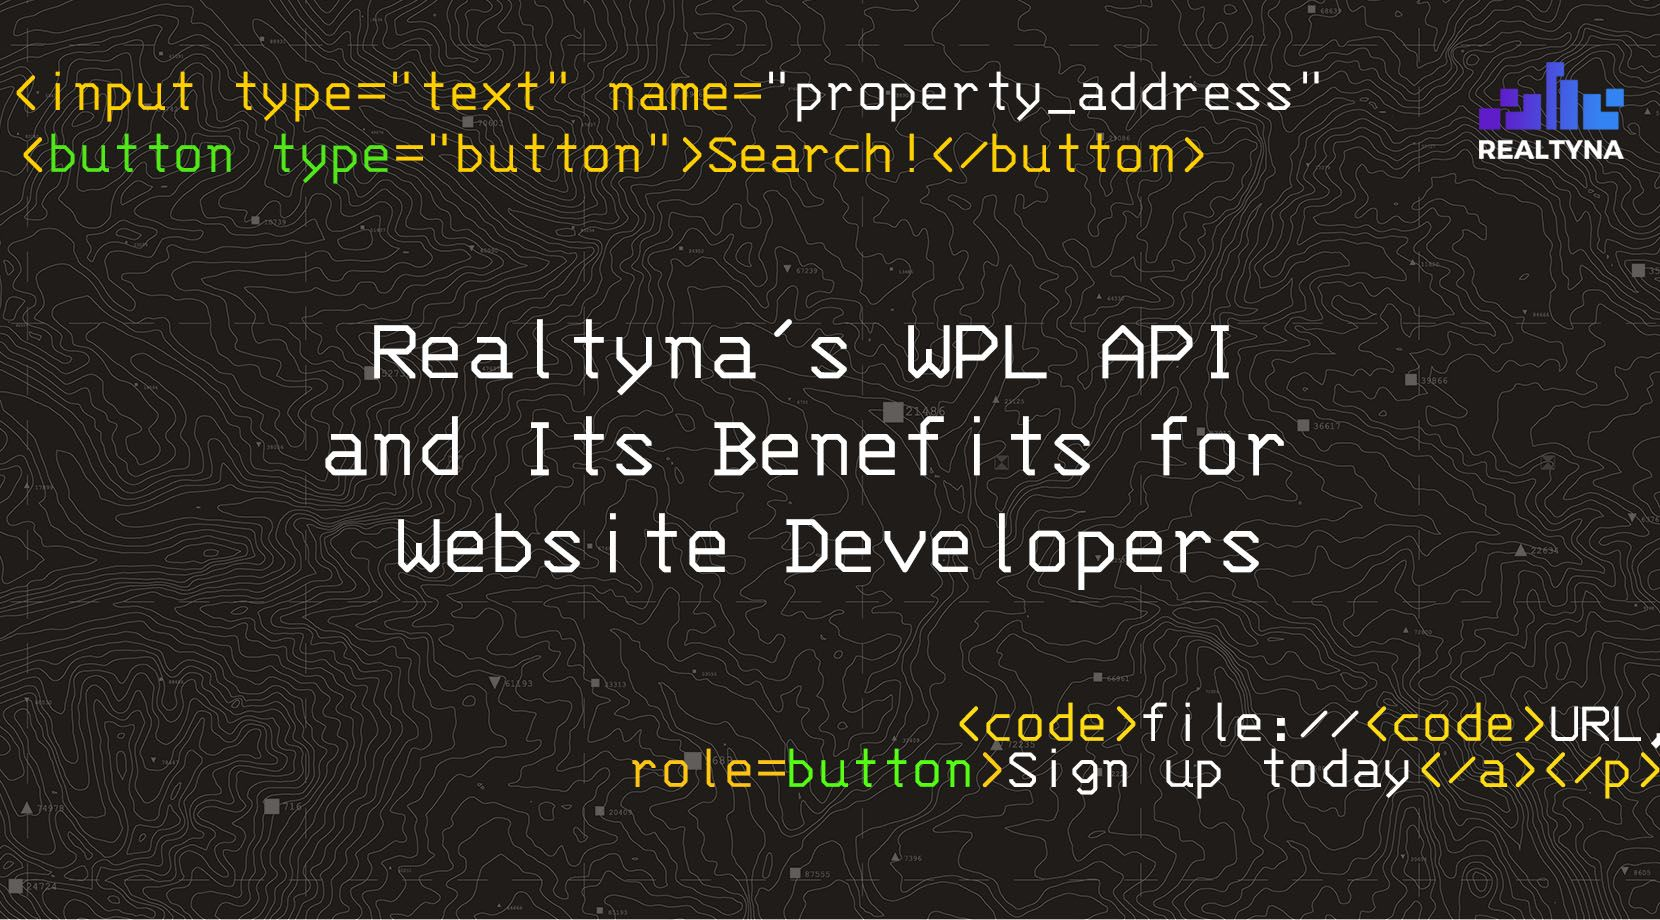 Realtyna's WPL API and Its Benefits for Website Developers